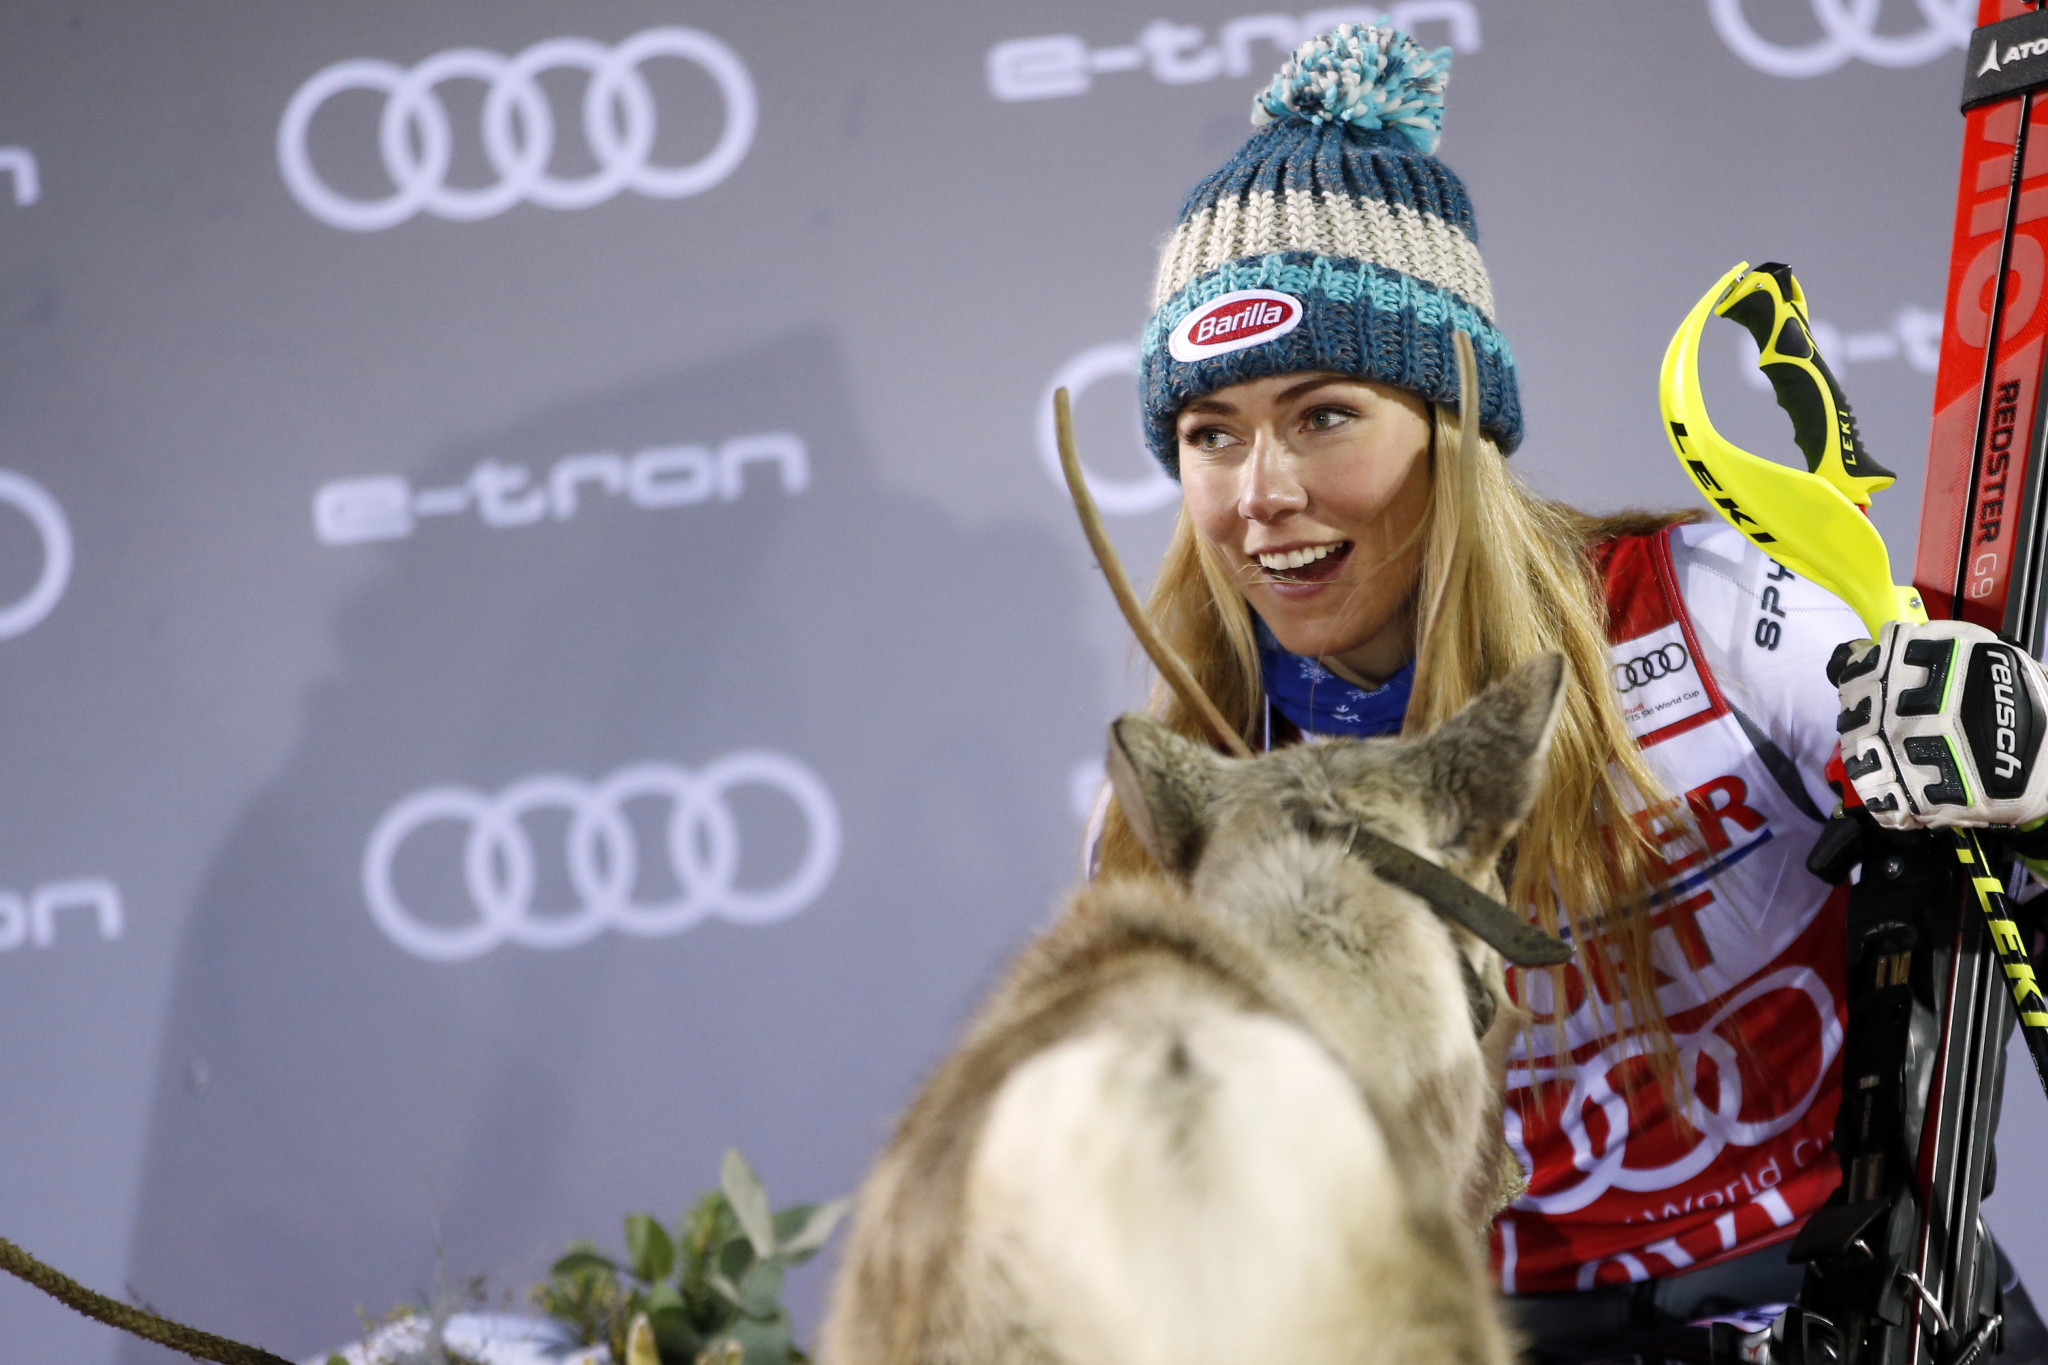 Shiffrin claims slalom World Cup win in Levi and rewarded with third reindeer